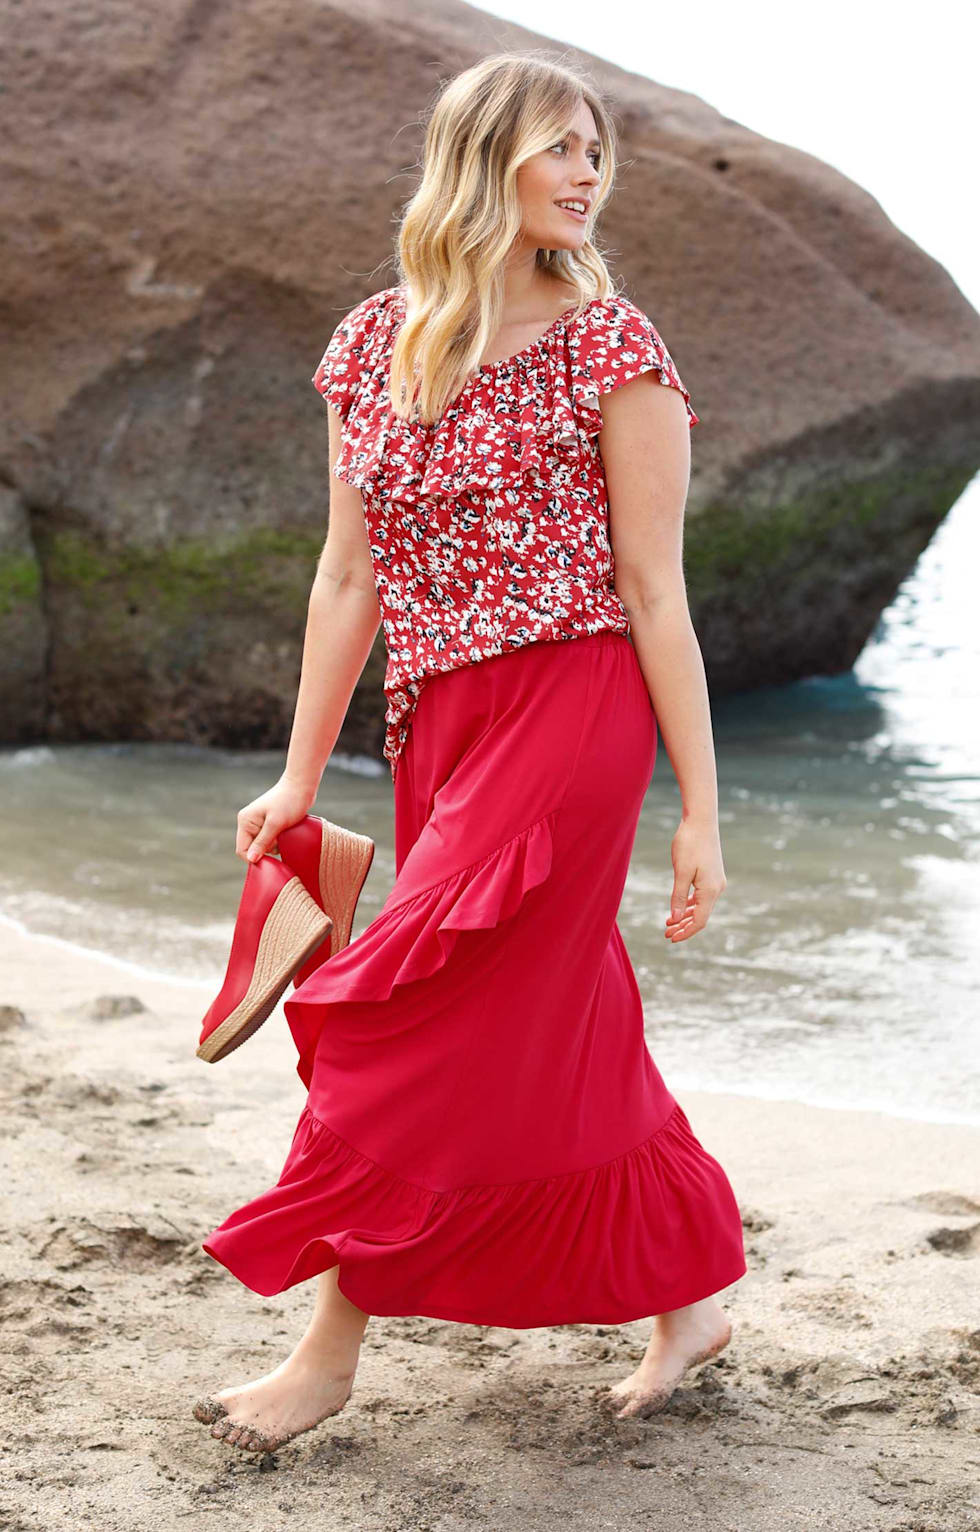 Sommeroutfit Damen rot